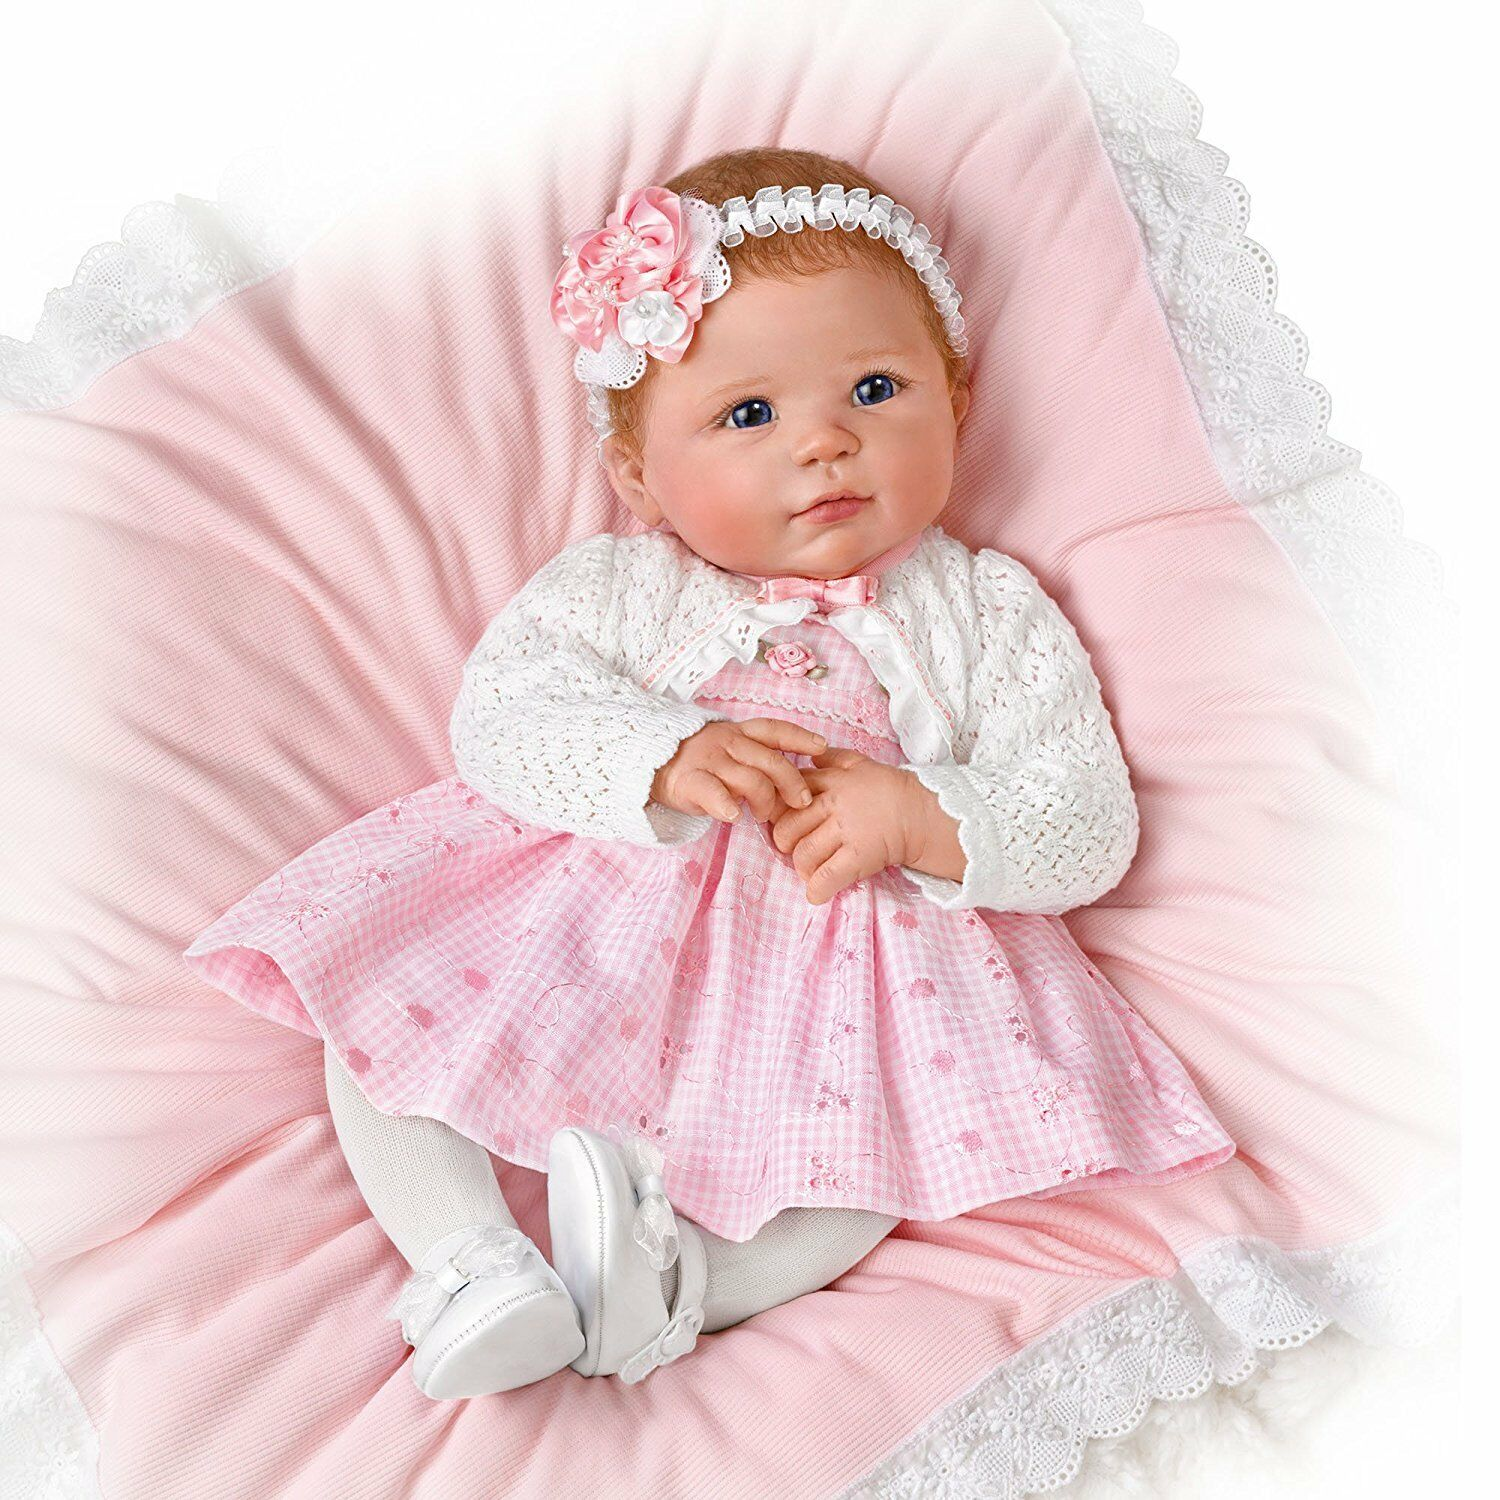 Ashton drake adorable amy 10th anniversary baby doll by for The ashton